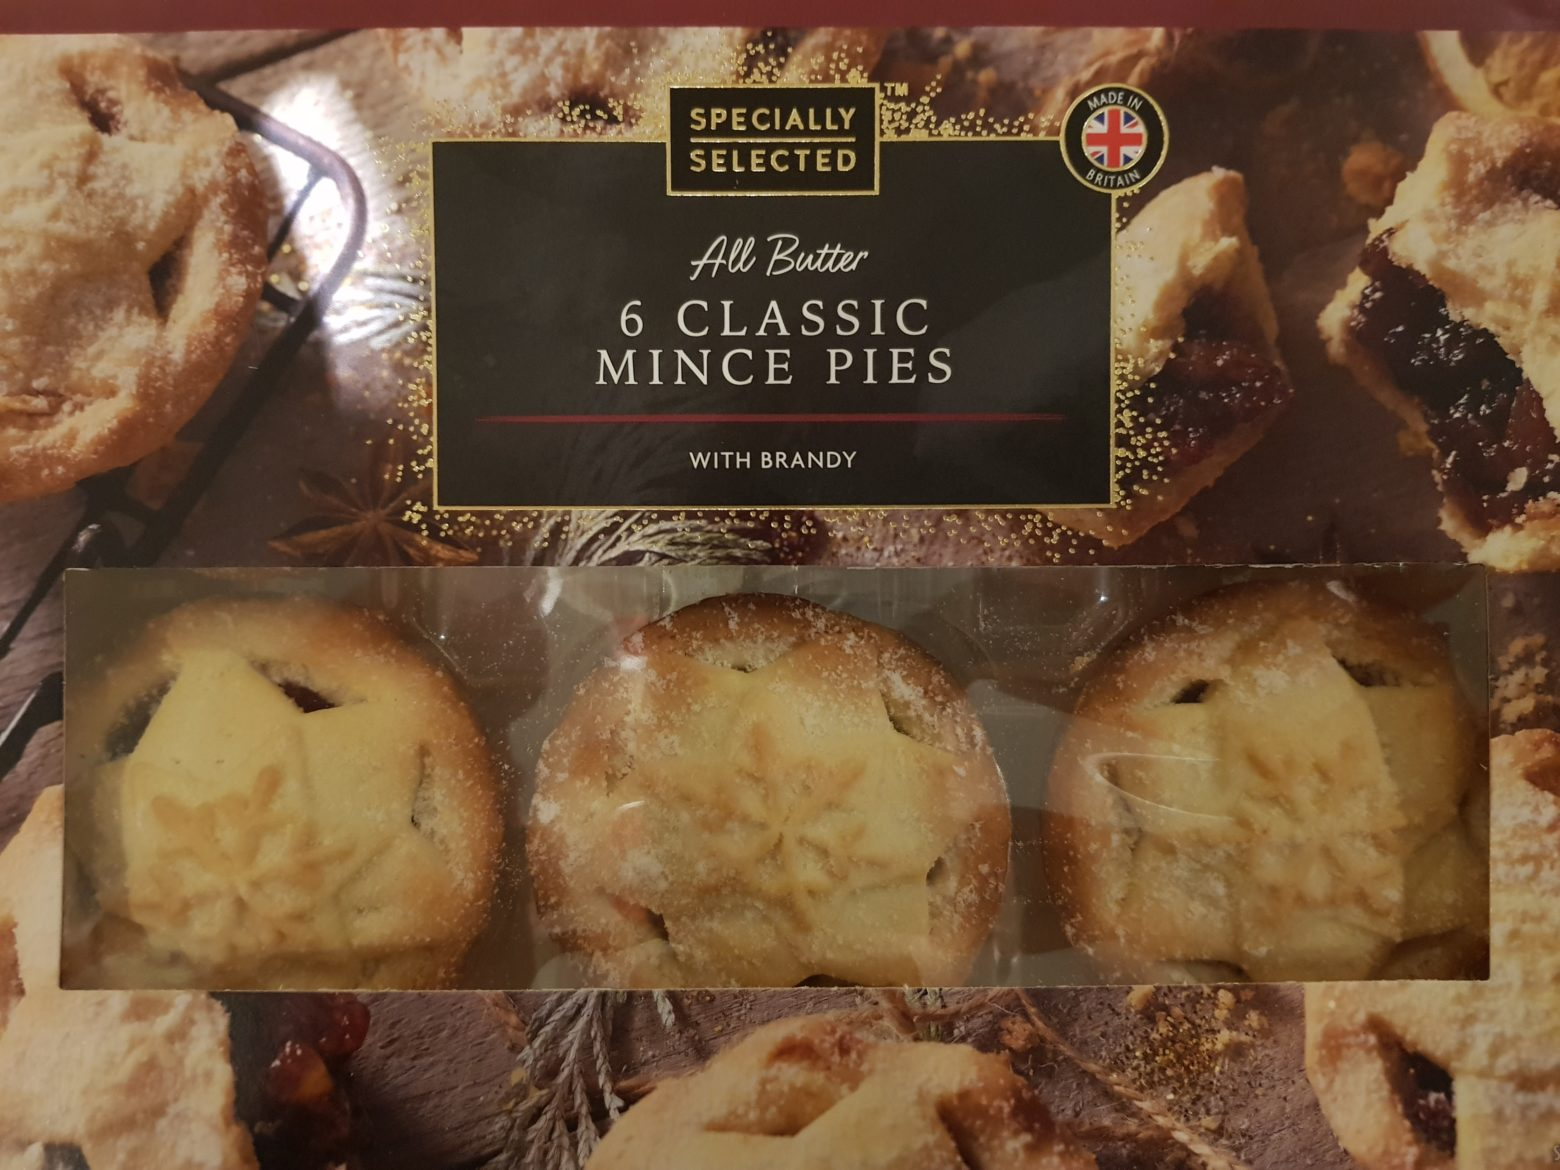 Aldi Specially Selected All Butter Classic Mince Pie Review 2019